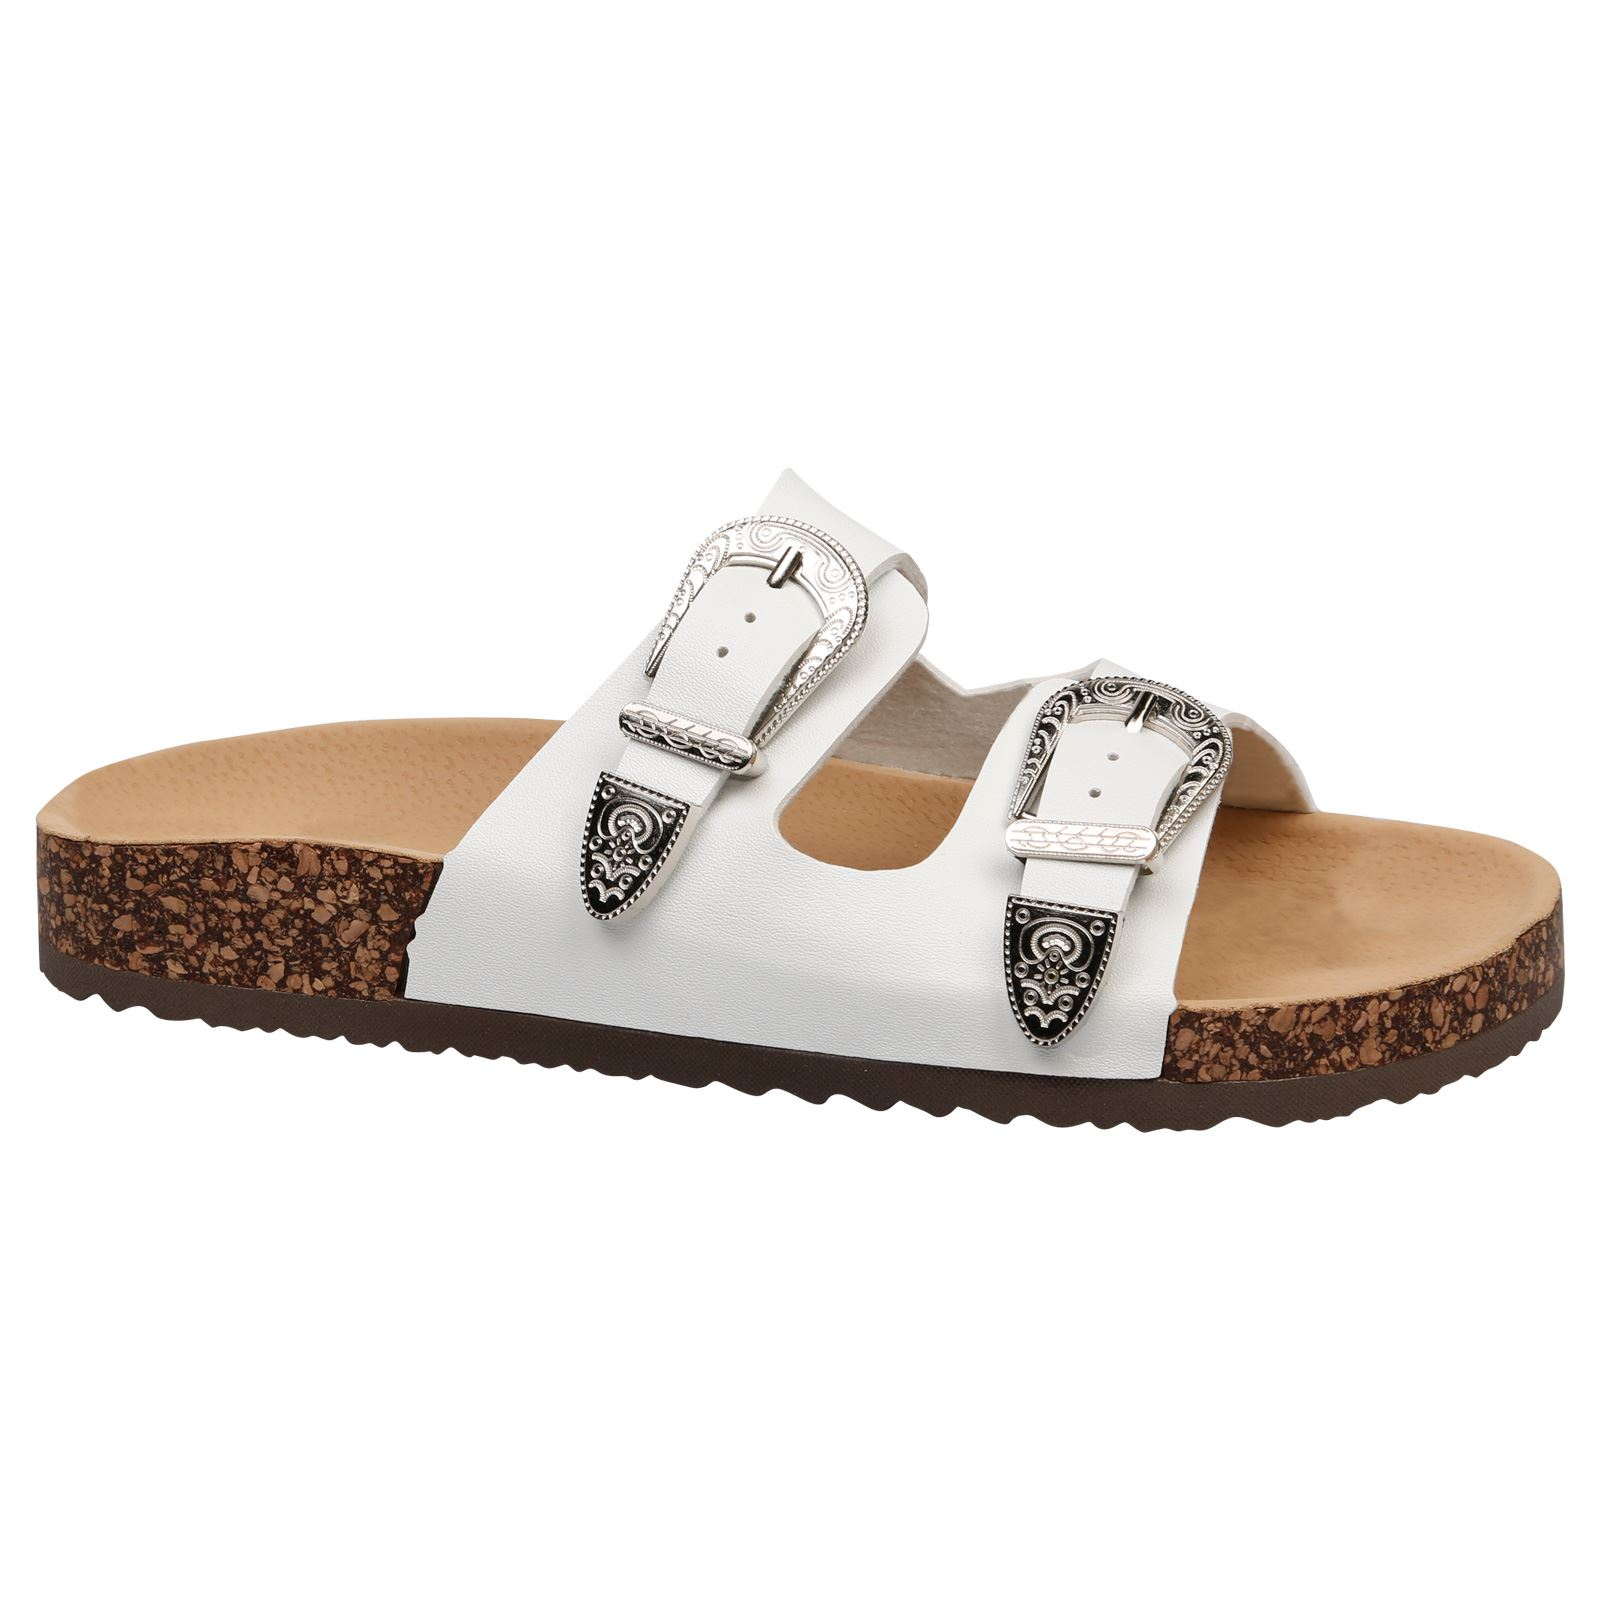 Buckle Footbed Sliders